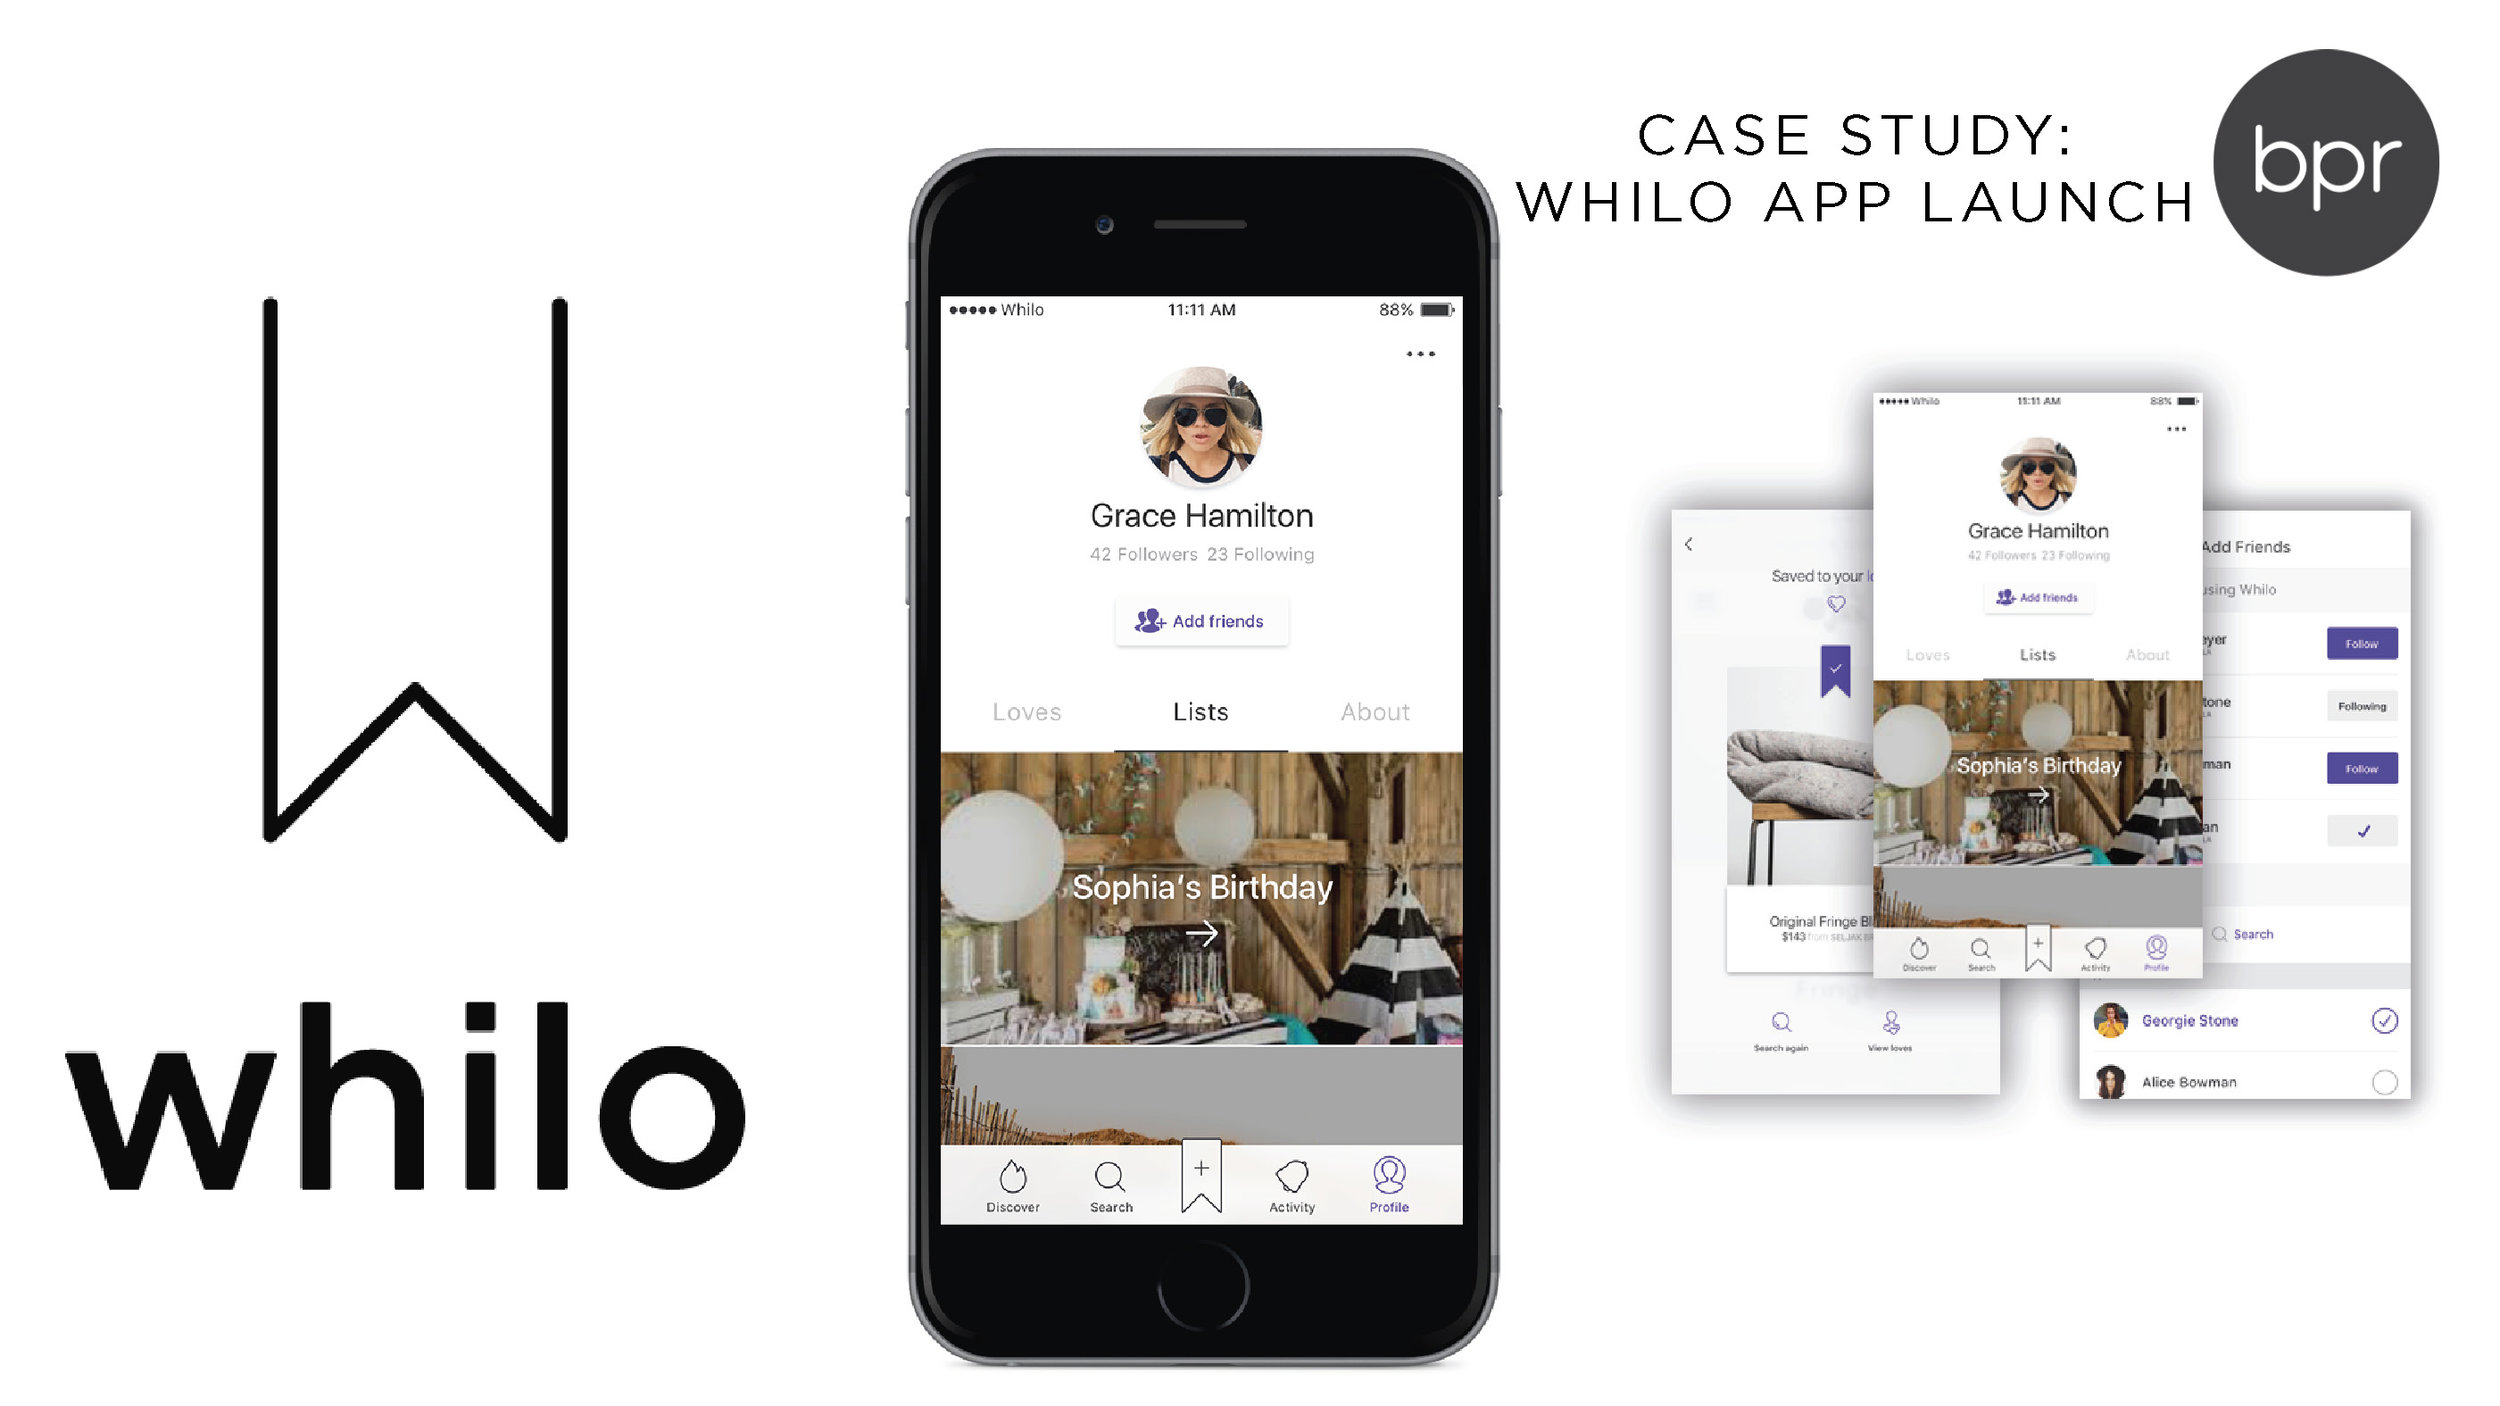 WHILO App Case Study_Page_1.jpg